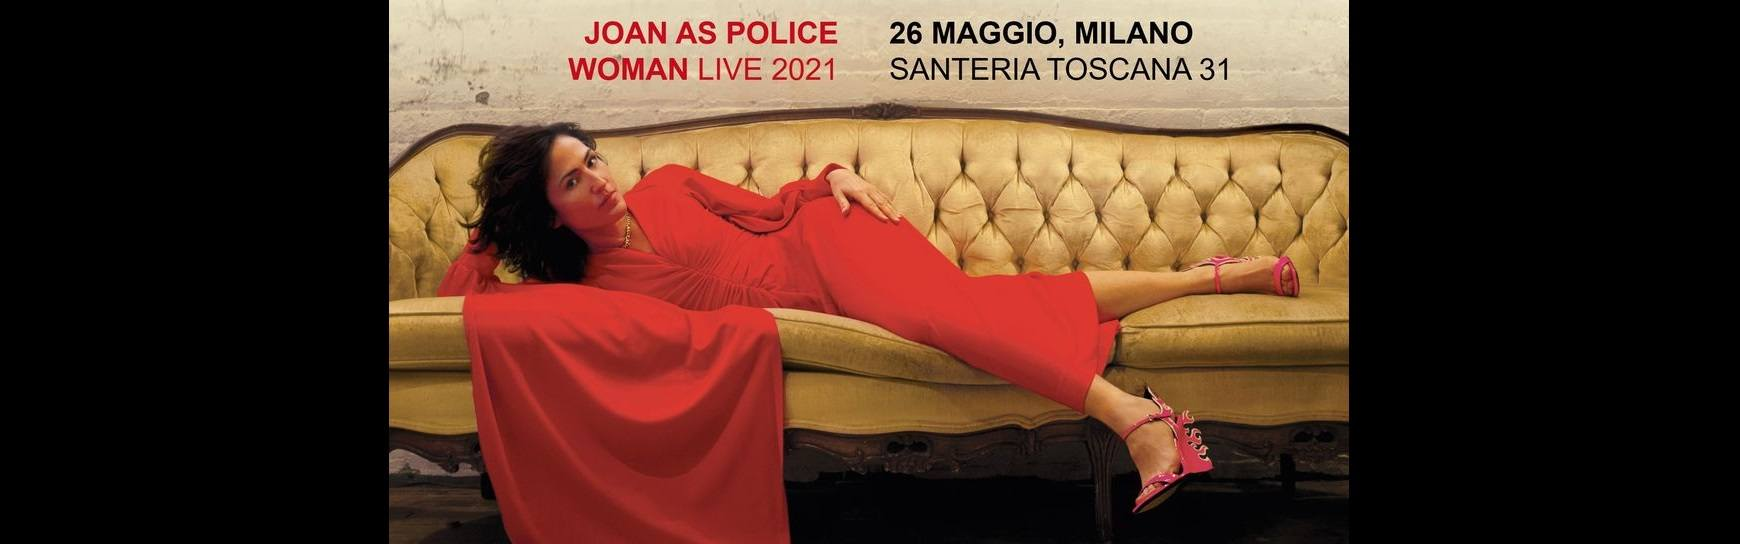 Joan as a Police woman concert at Santeria Toscana 31 Milano 26/05/2021 biglietti tickets mailticket | Notizie